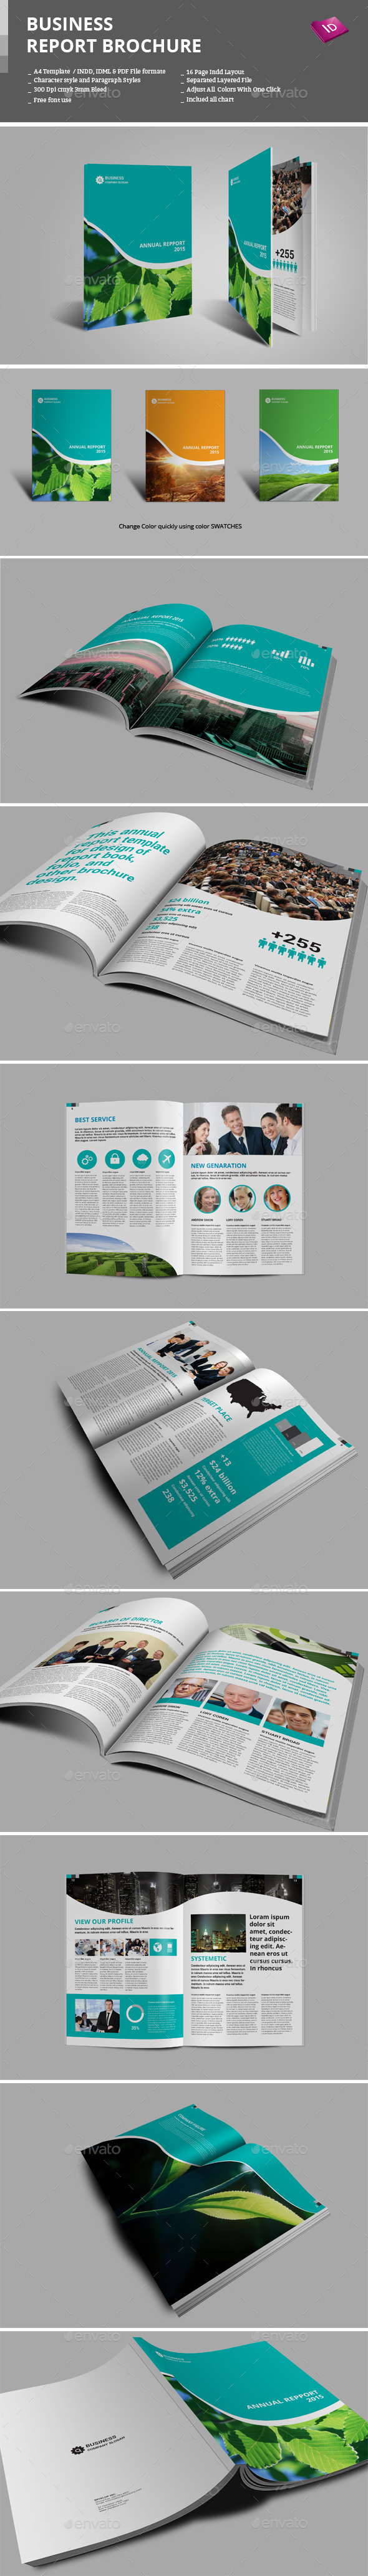 GraphicRiver Business Report Brochure 9277429